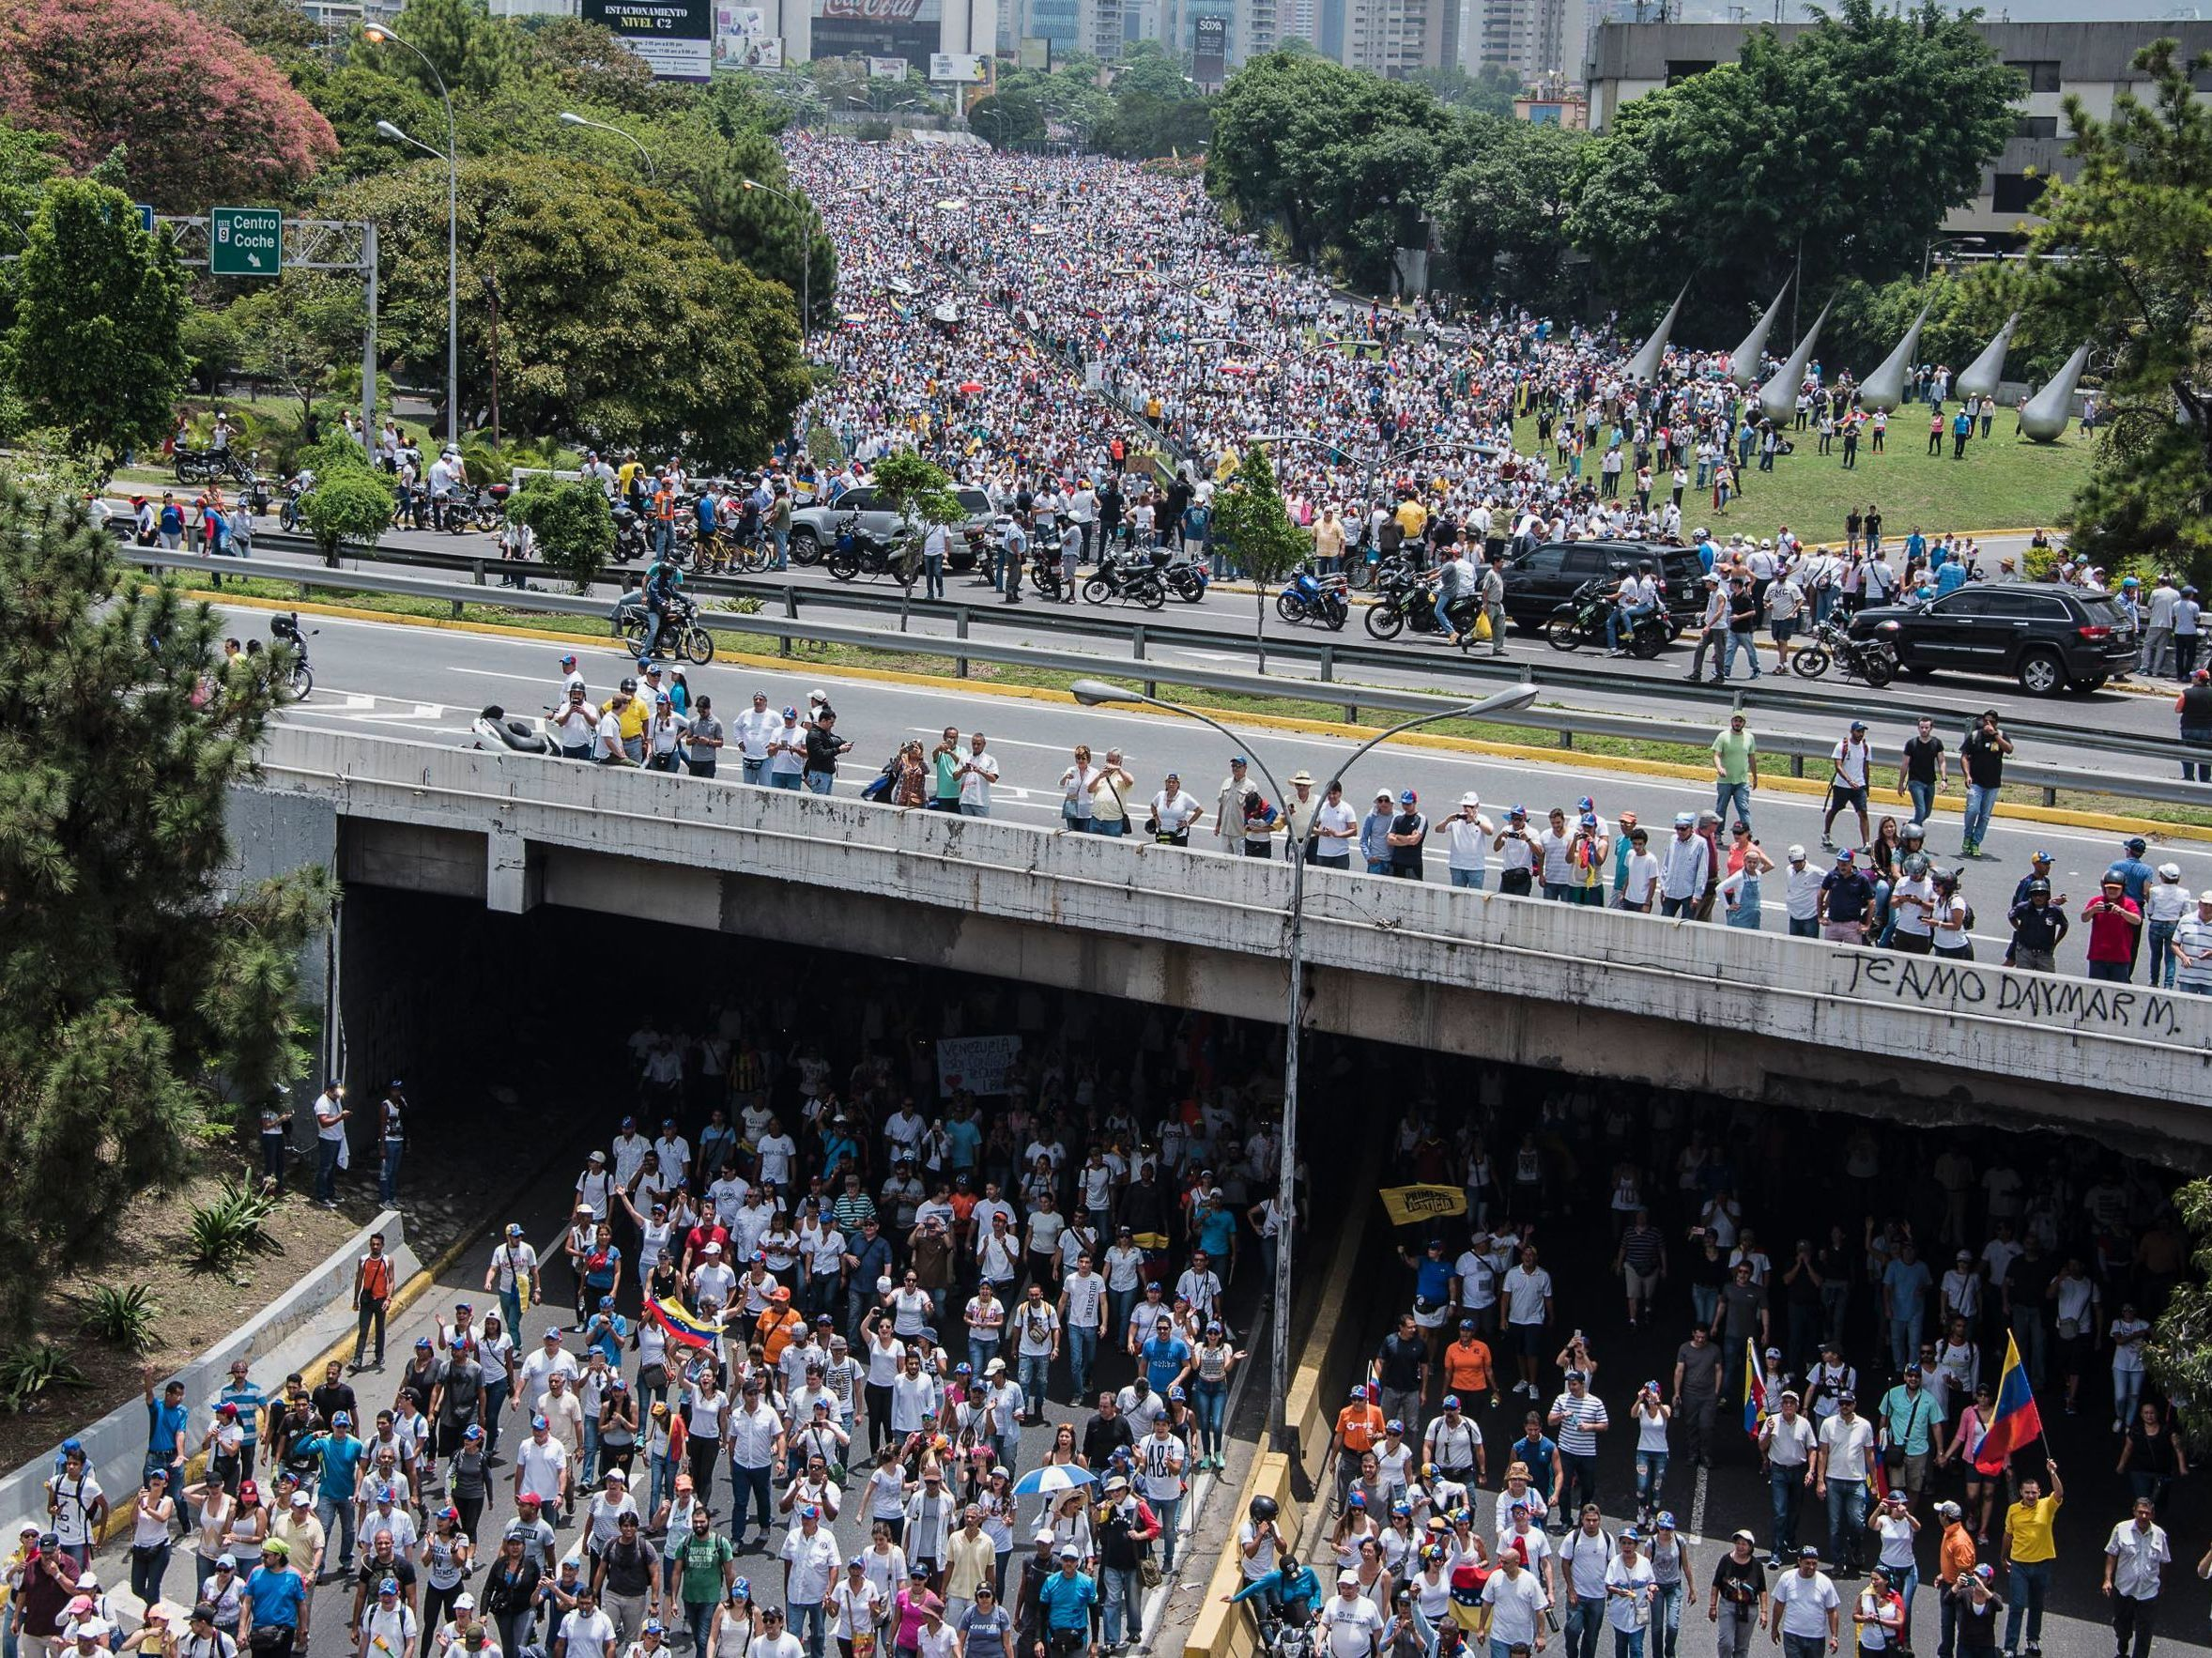 Demonstrators clog a Caracas highway on Wednesday, shouting their resistance to President Nicolas Maduro. The president's push to tighten his power has helped trigger deadly unrest in Venezuela. (Carlos Becerra/AFP/Getty Images     )